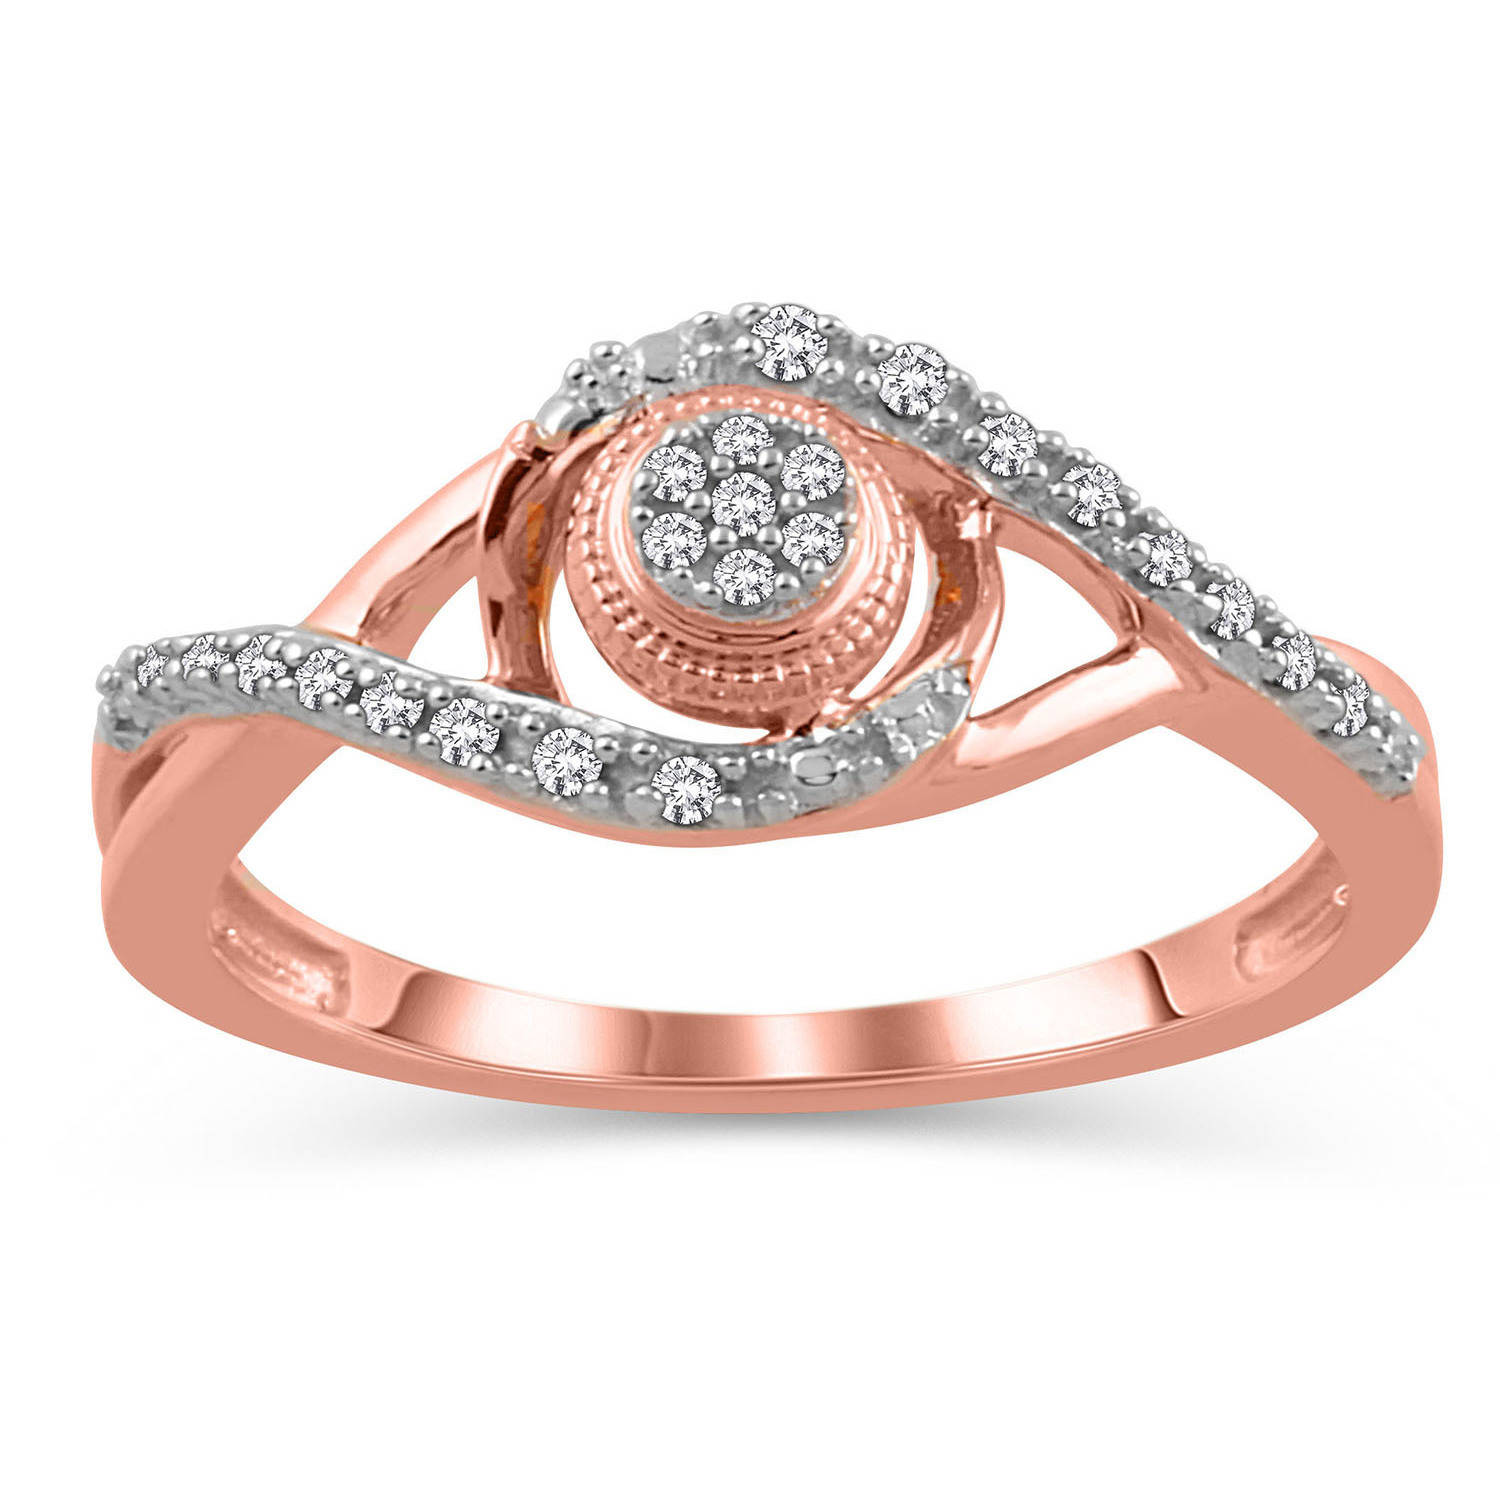 1 10 carat t w 10kt pink gold promise ring